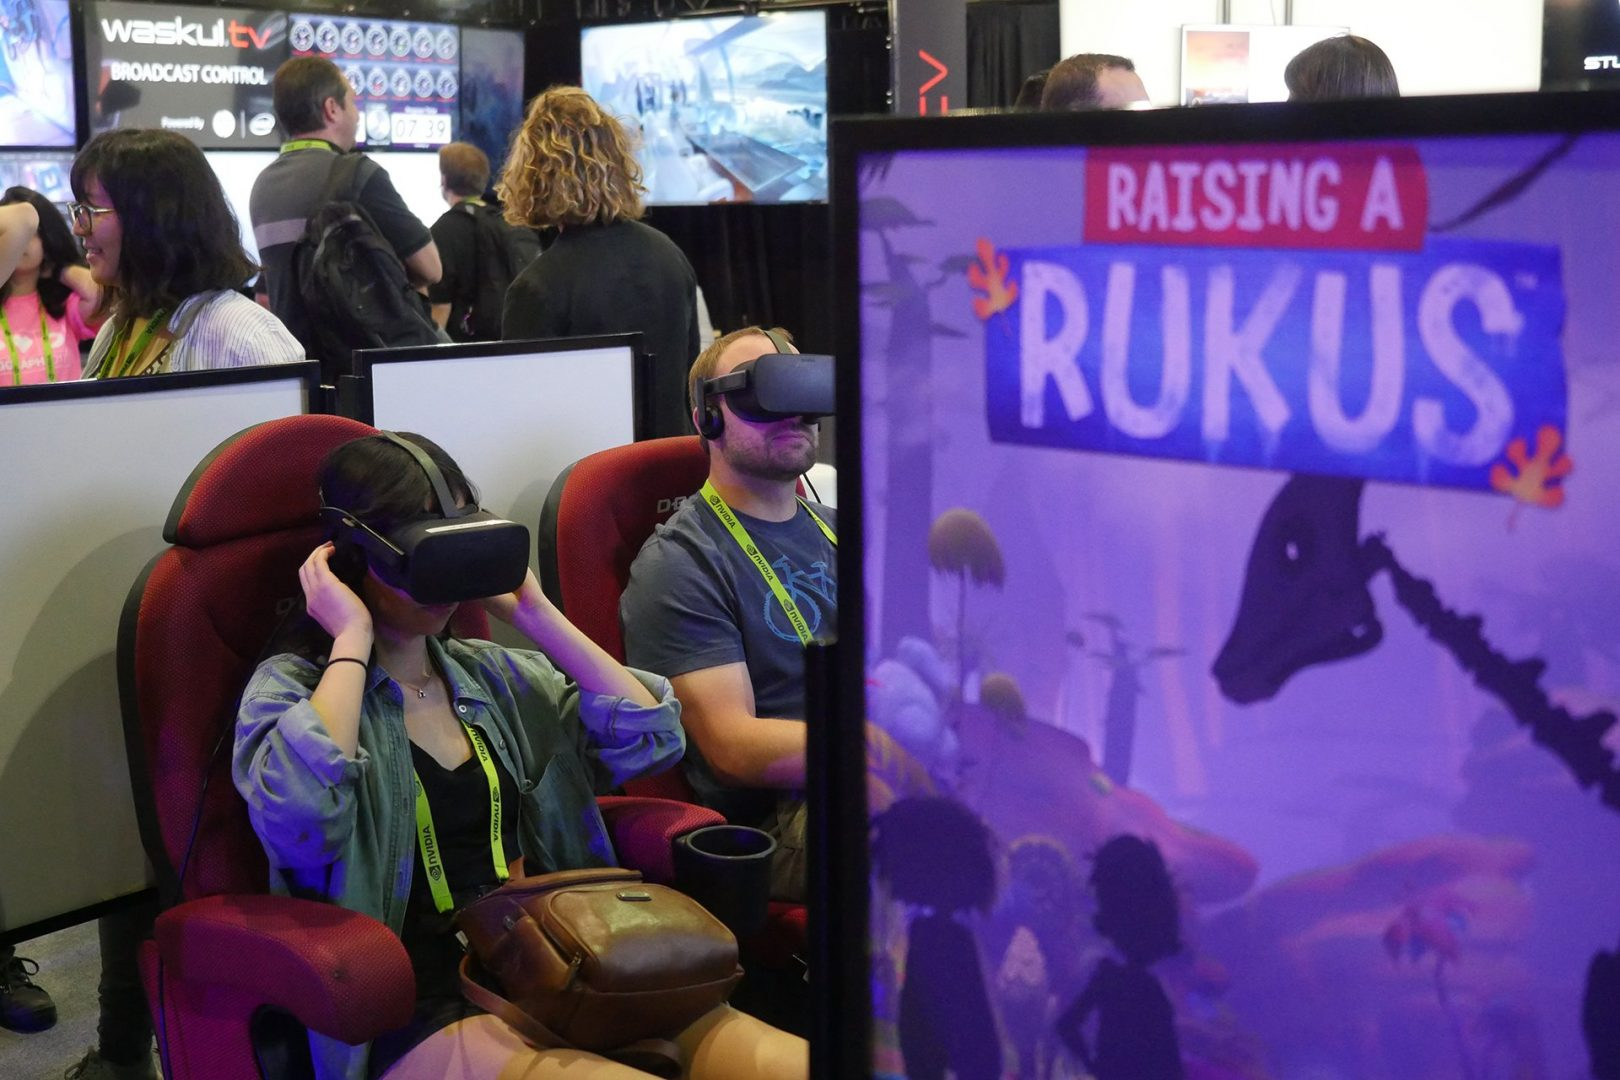 The Virtual Reality Company's Raising A Rukus is one of the best VR Experiences our team has seen to date and we were proud to feature it in StudioXperience at SIGGRAPH 2017. Robert Stromberg, co-founder and CCO of VRC was one of our interviewees as well.